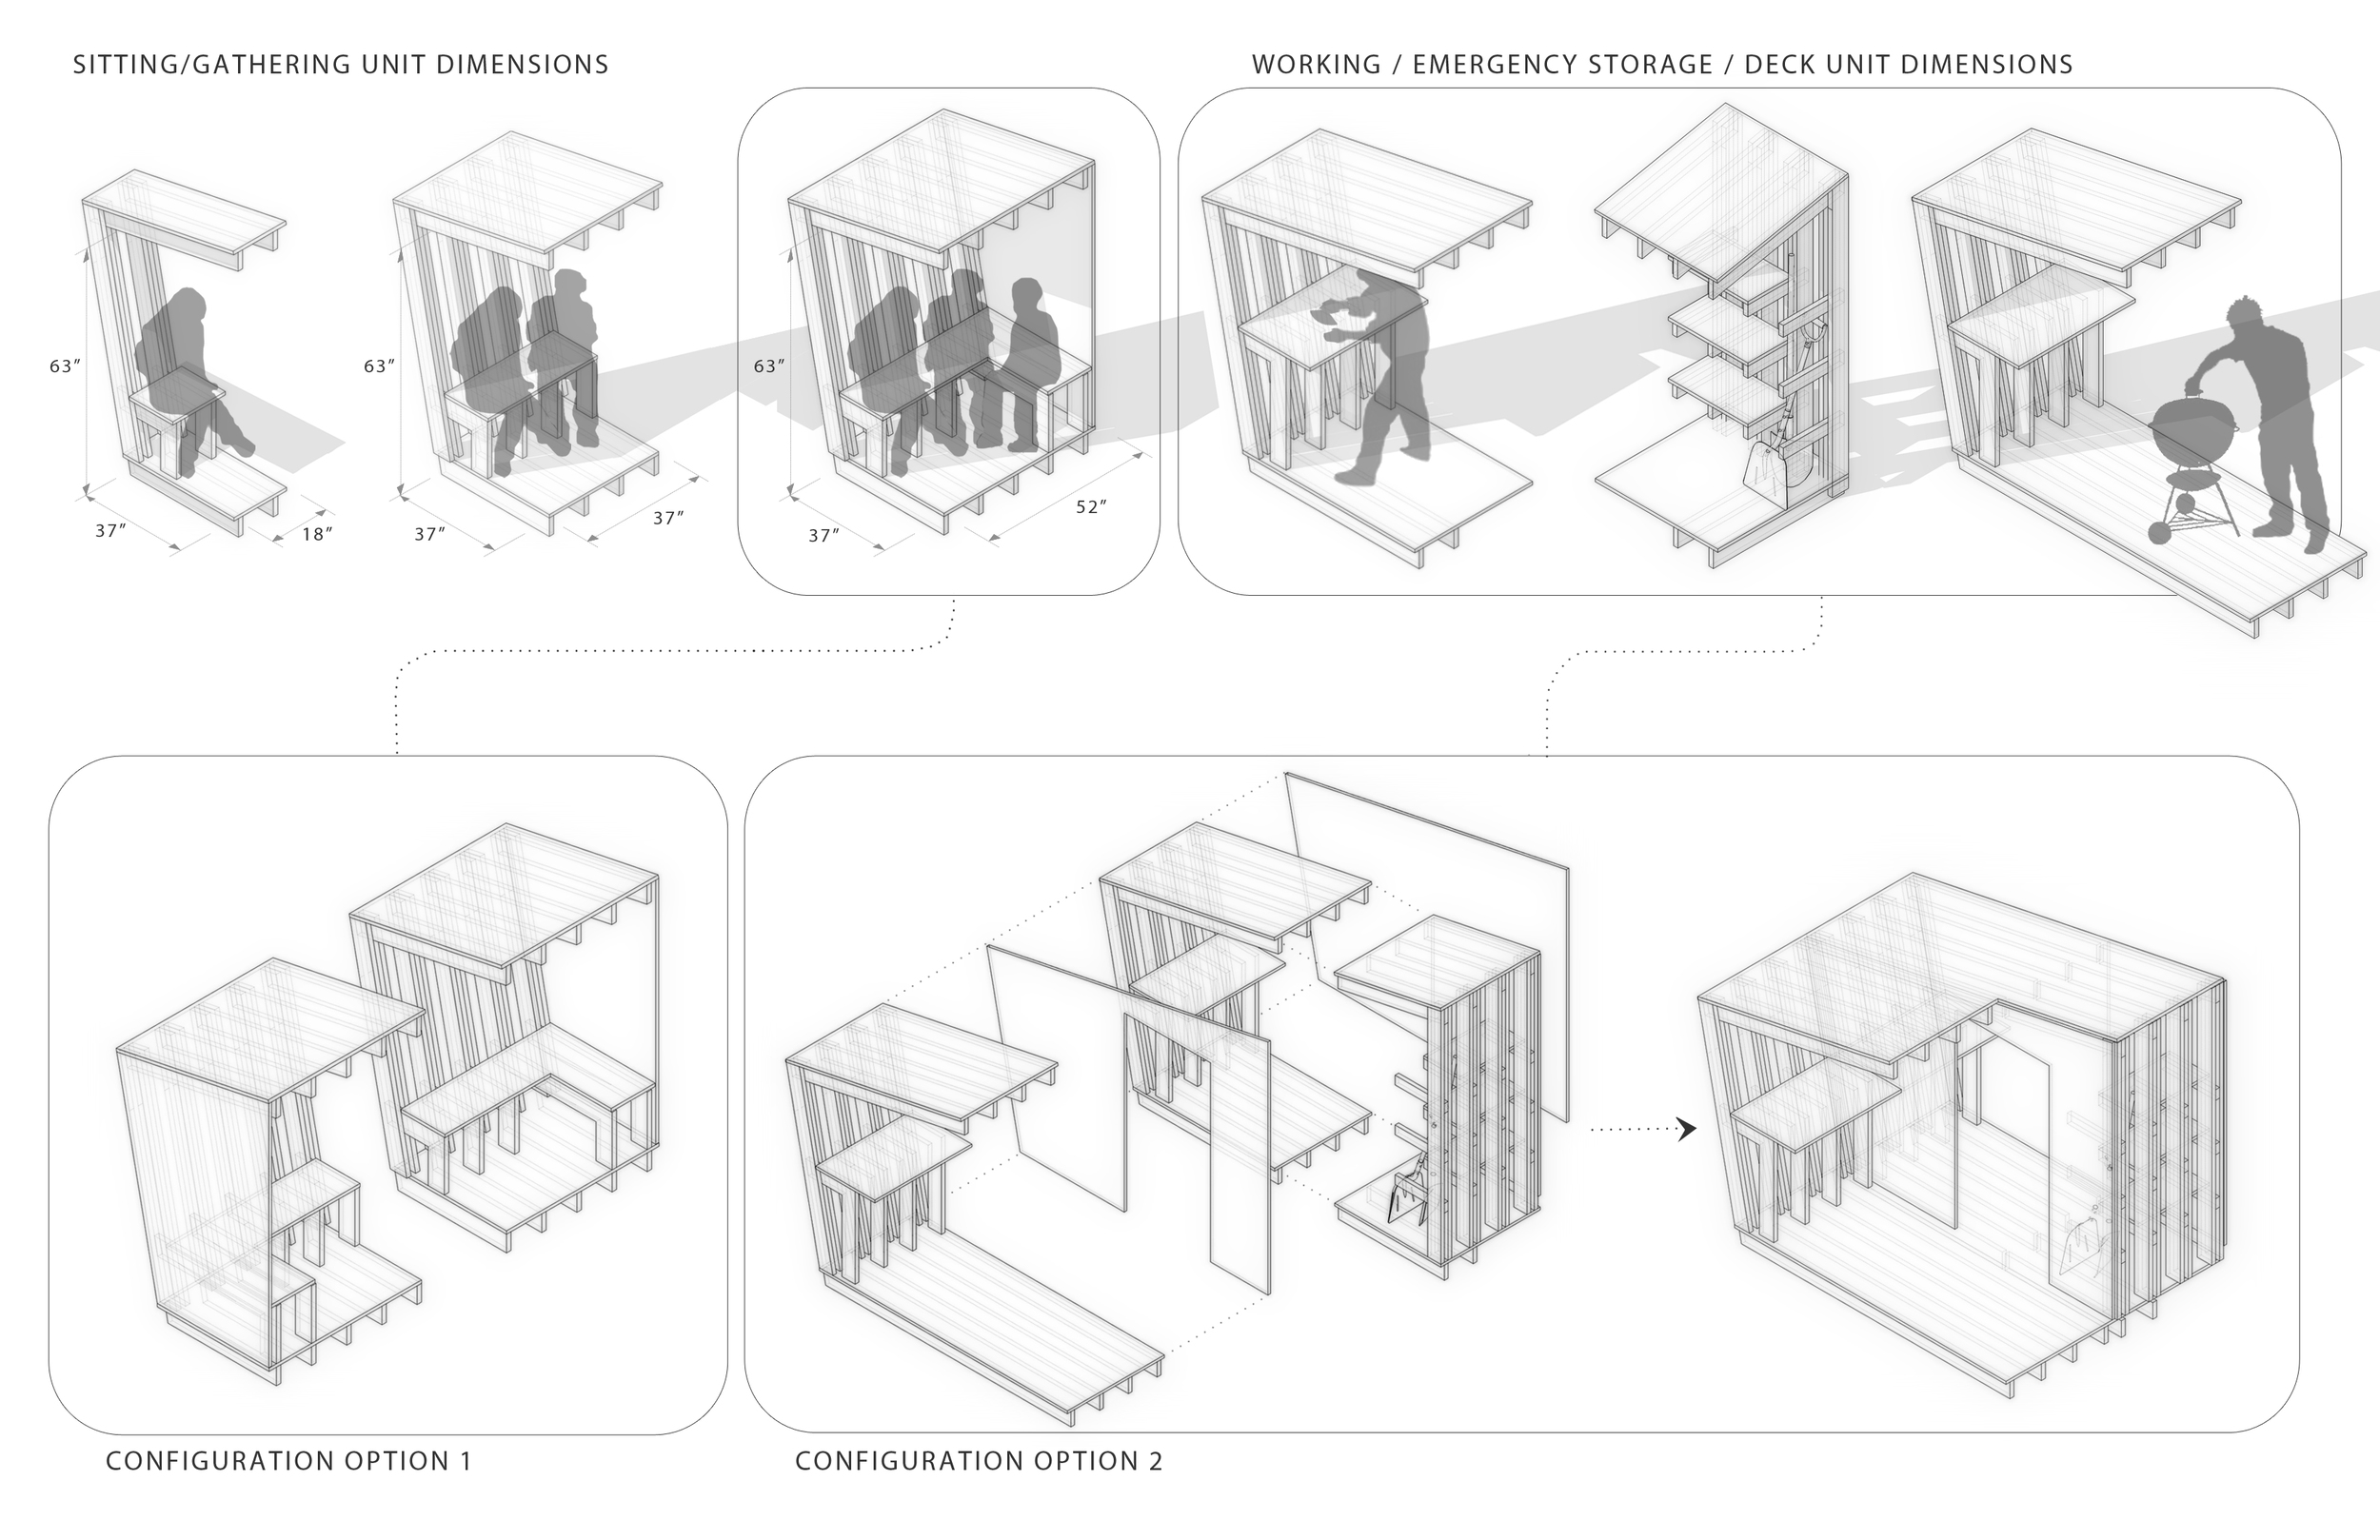 Some studies of dimensions and size requirements for various activities. Many configuration options are possible, two are shown here.